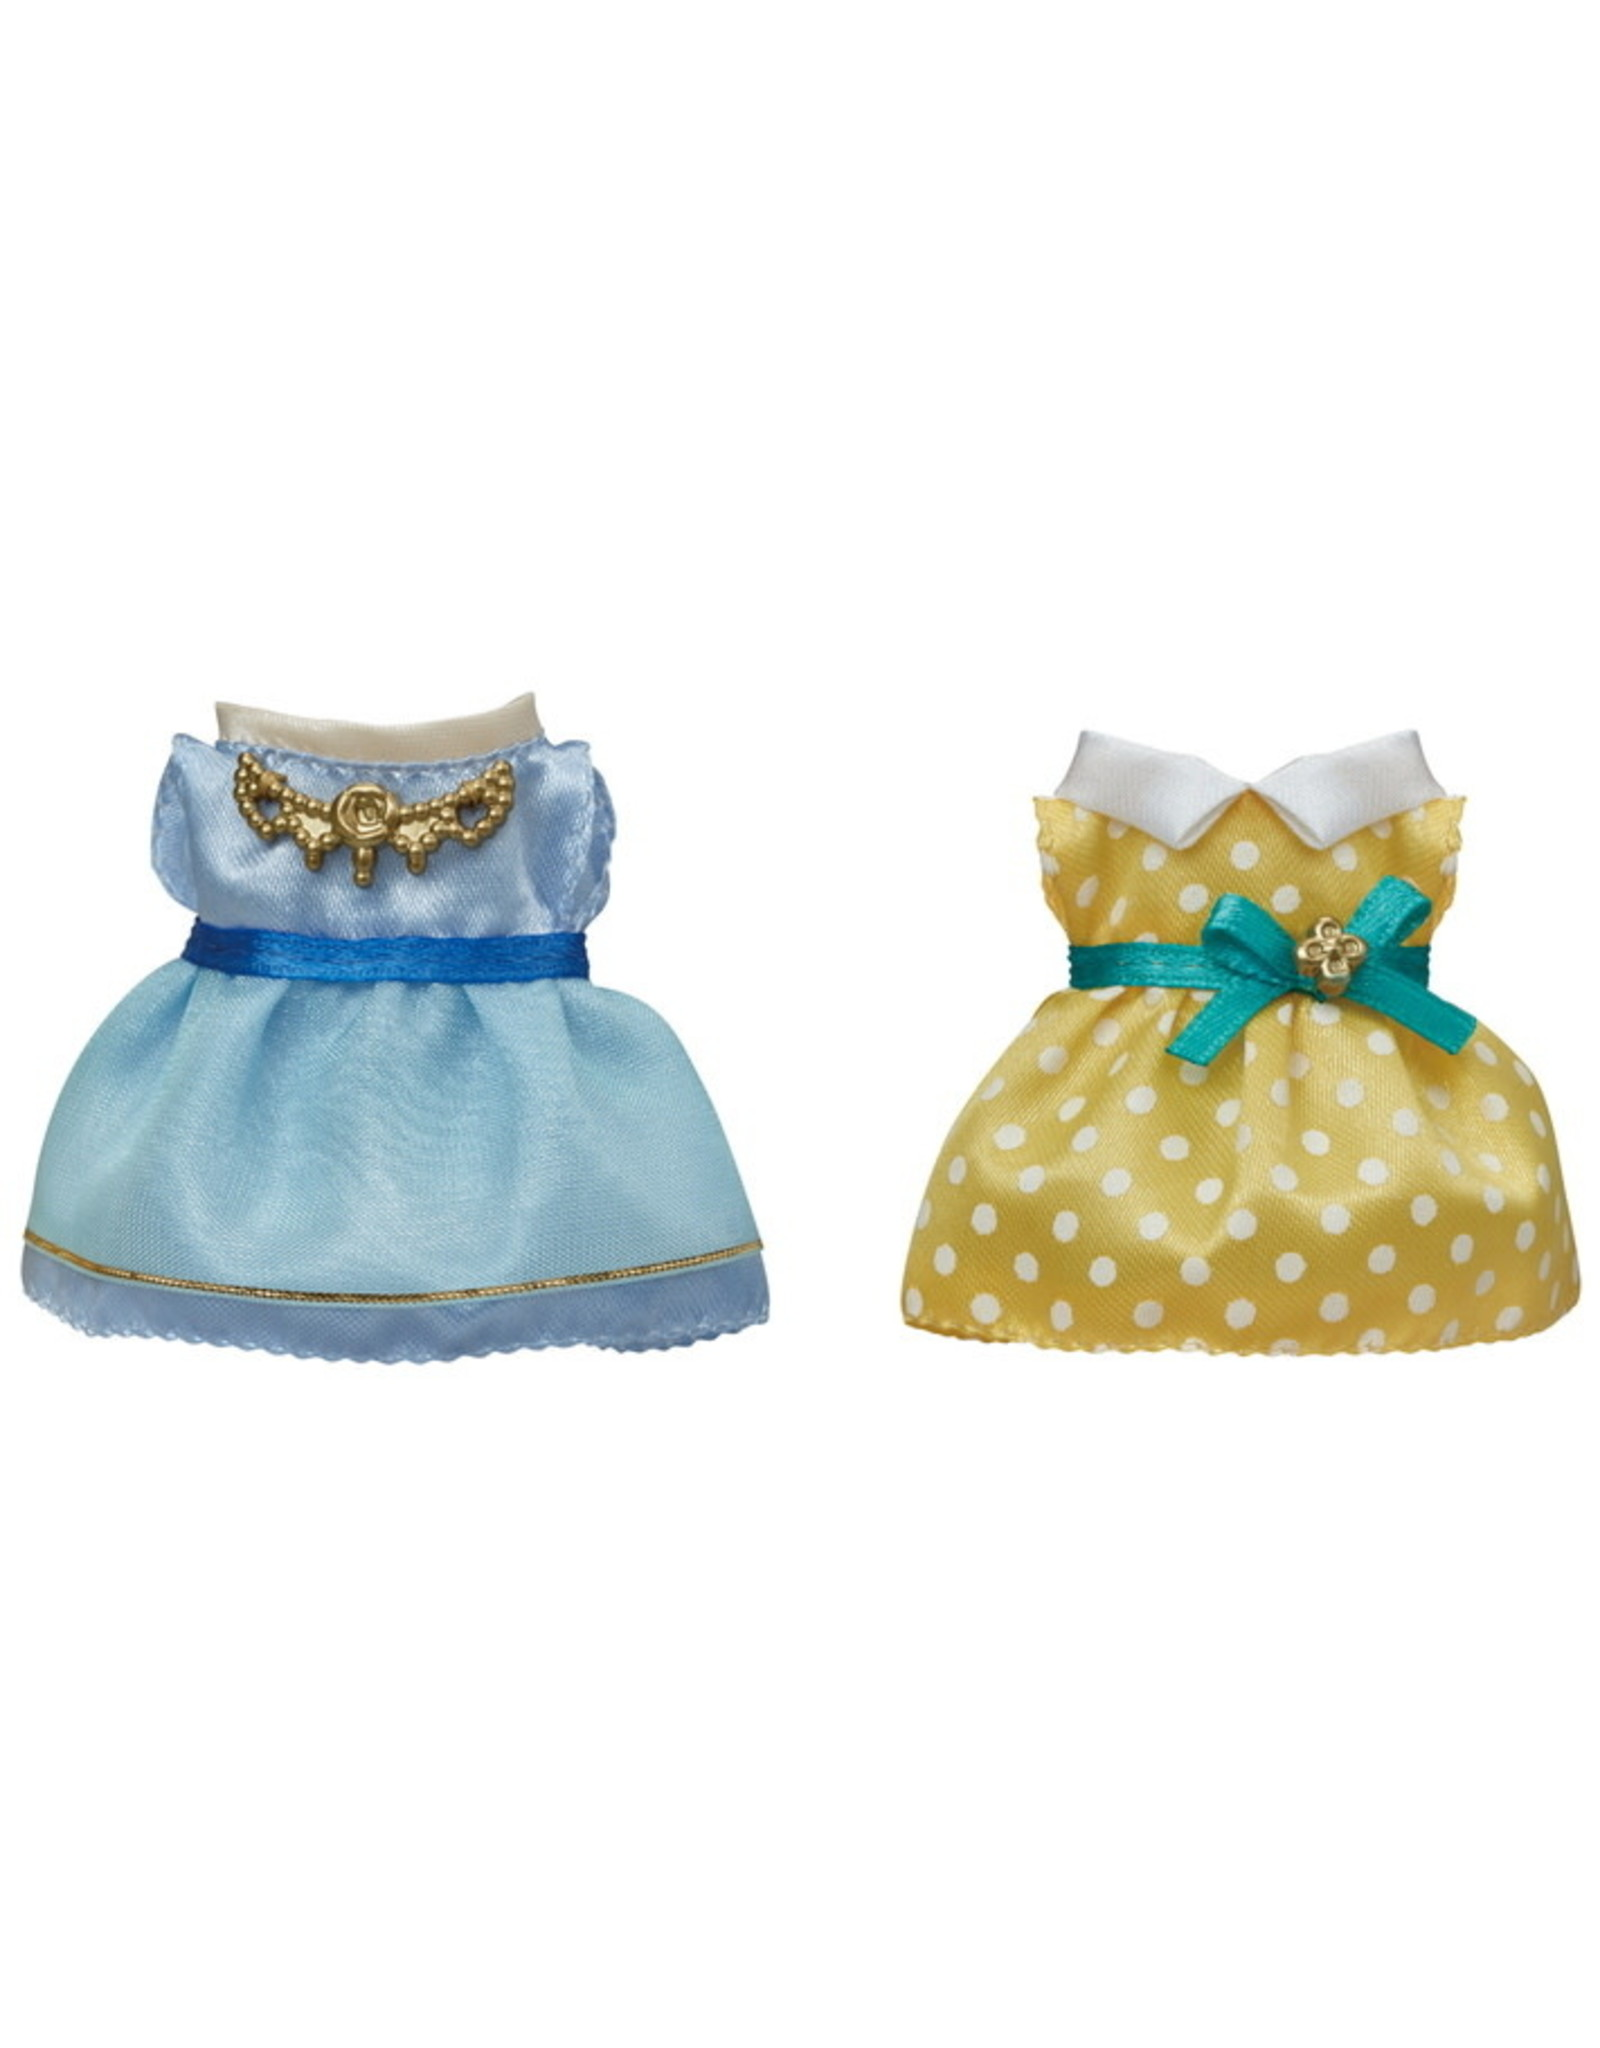 Calico Critters BL Dress Up Blue and Yellow Calico Critters